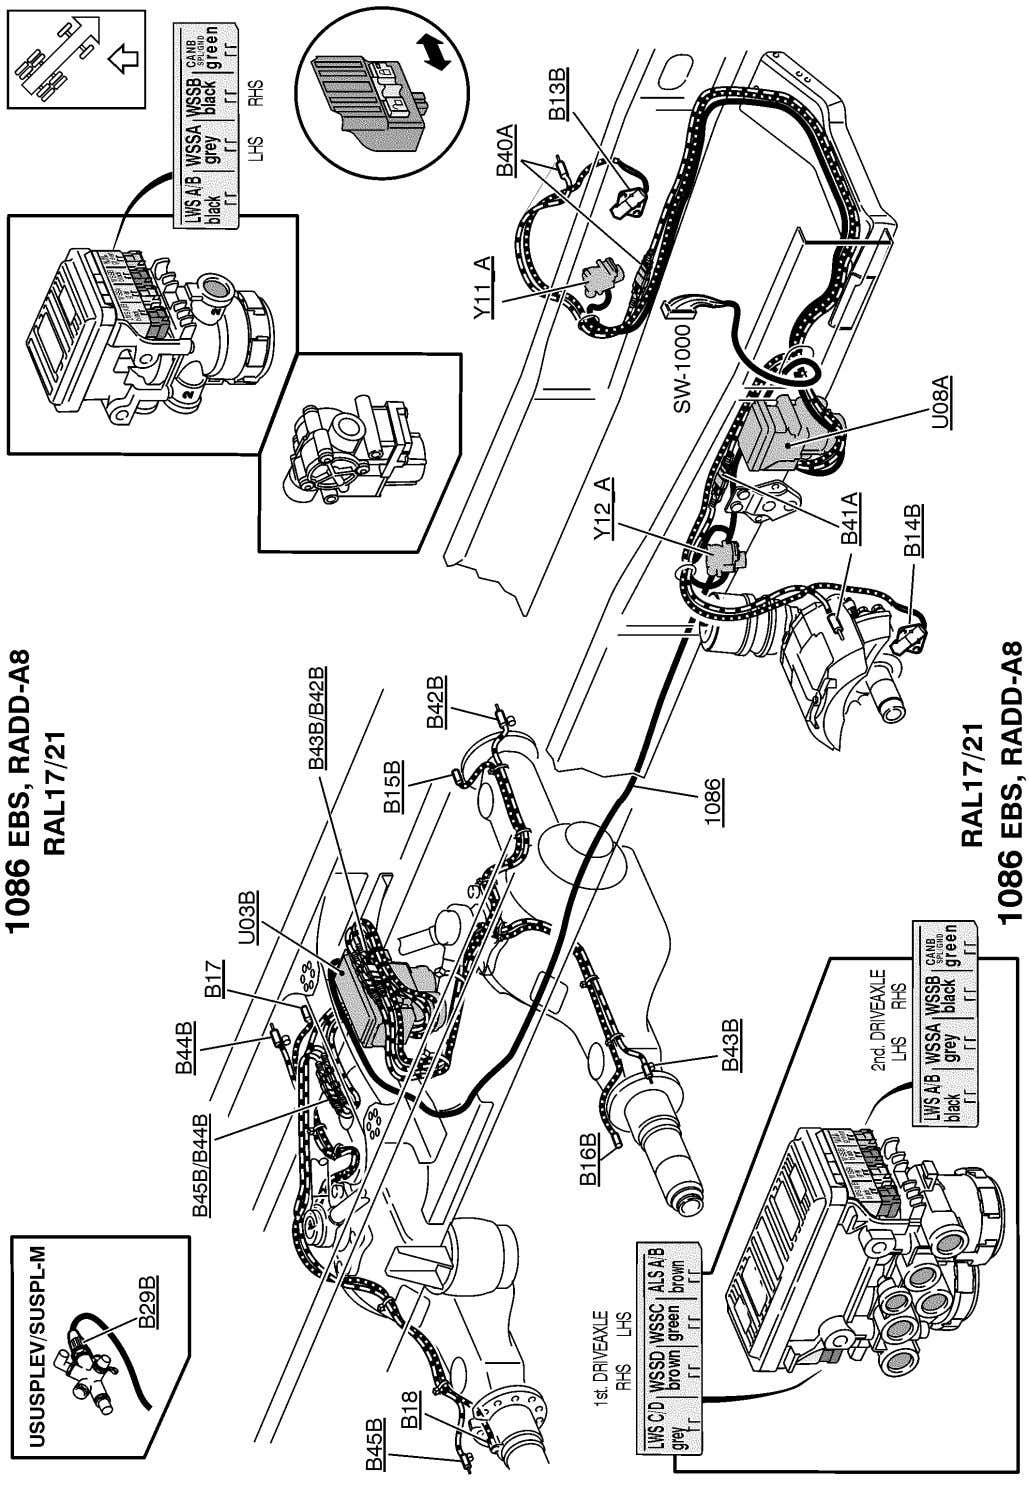 T3021582 Wiring diagram Page 189 (298)